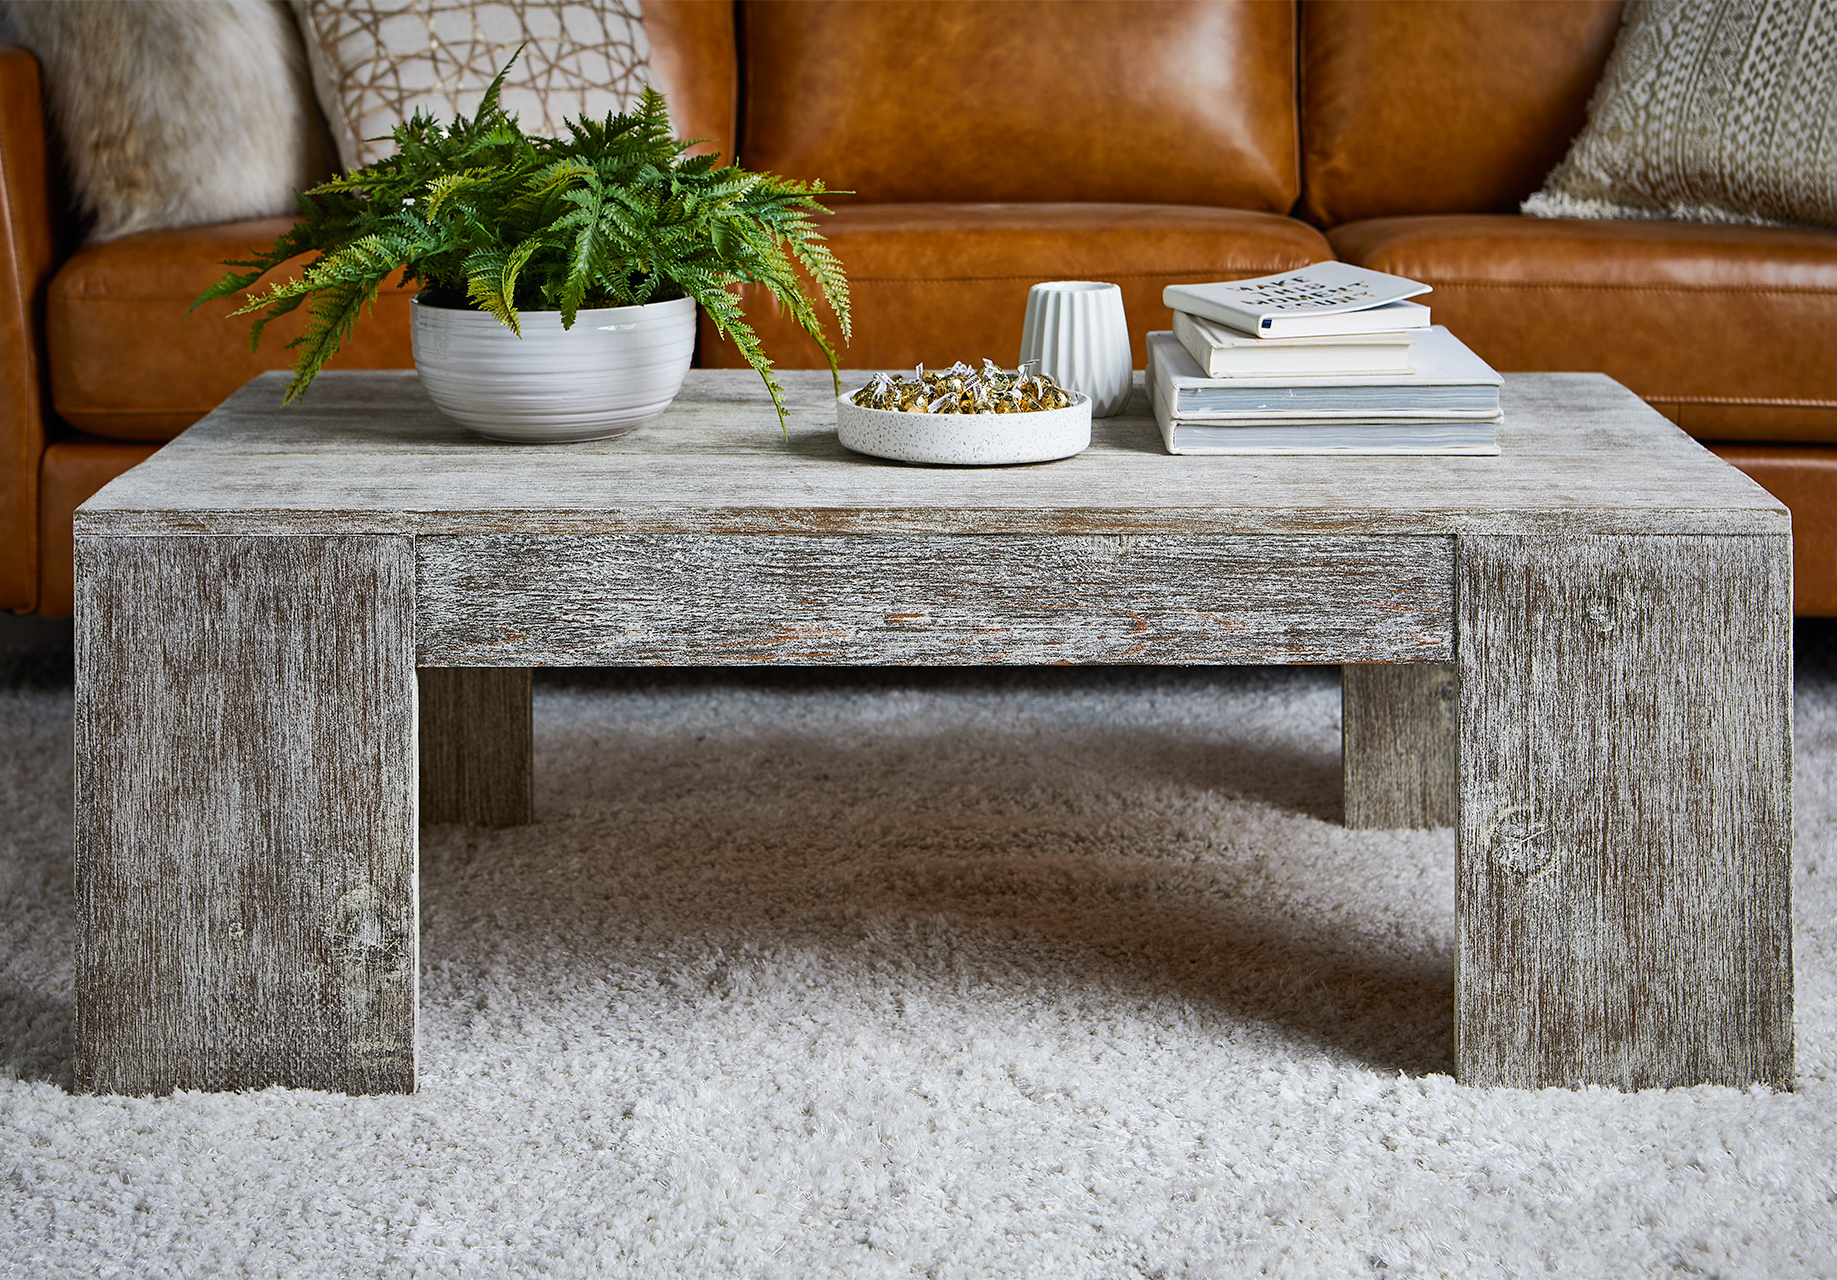 How to Make a Farmhouse Coffee Table